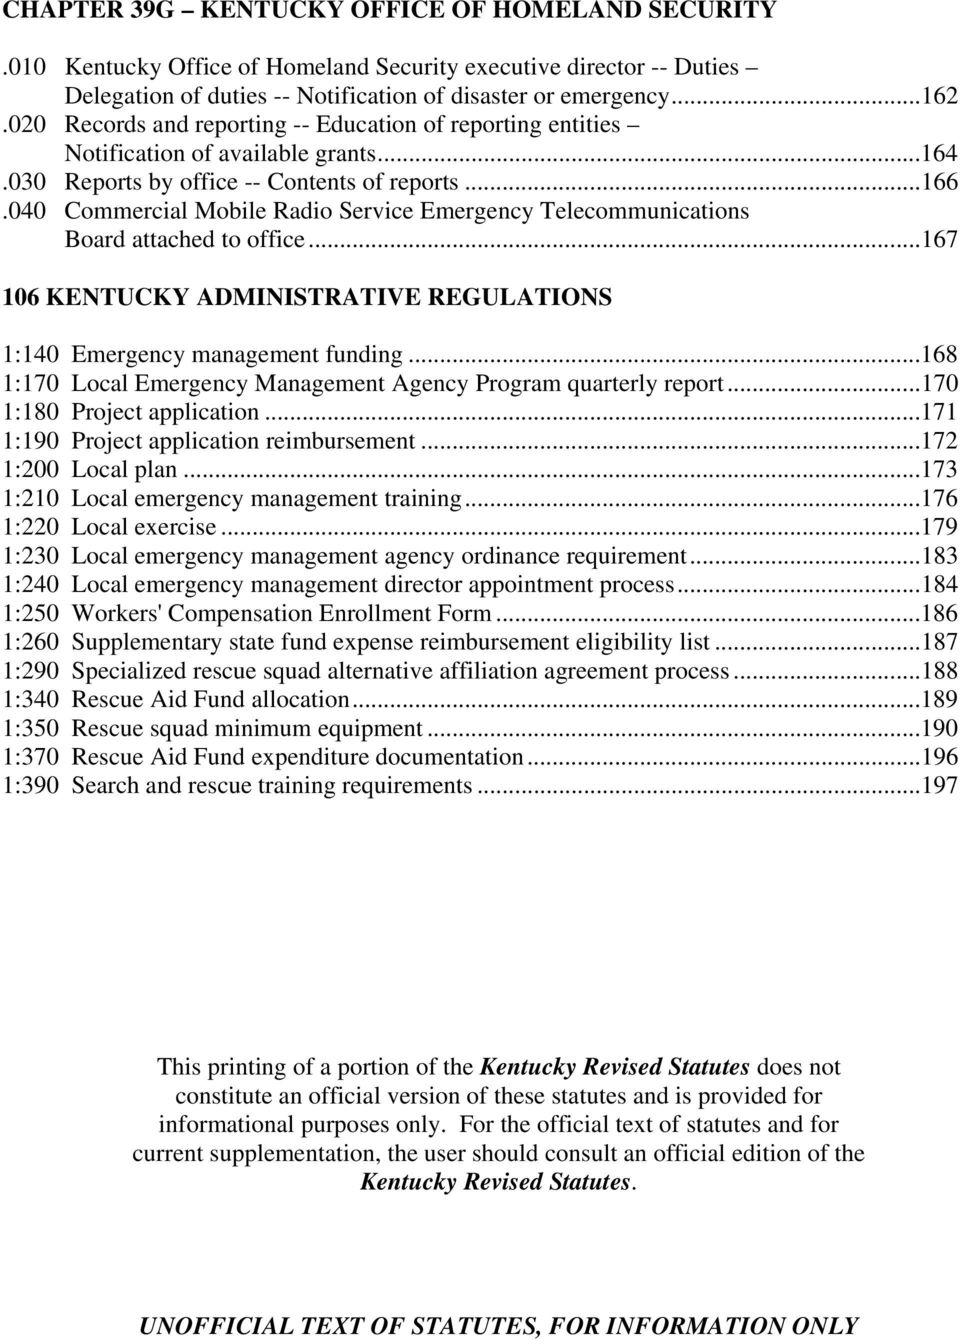 040 Commercial Mobile Radio Service Emergency Telecommunications Board attached to office...167 106 KENTUCKY ADMINISTRATIVE REGULATIONS 1:140 Emergency management funding.